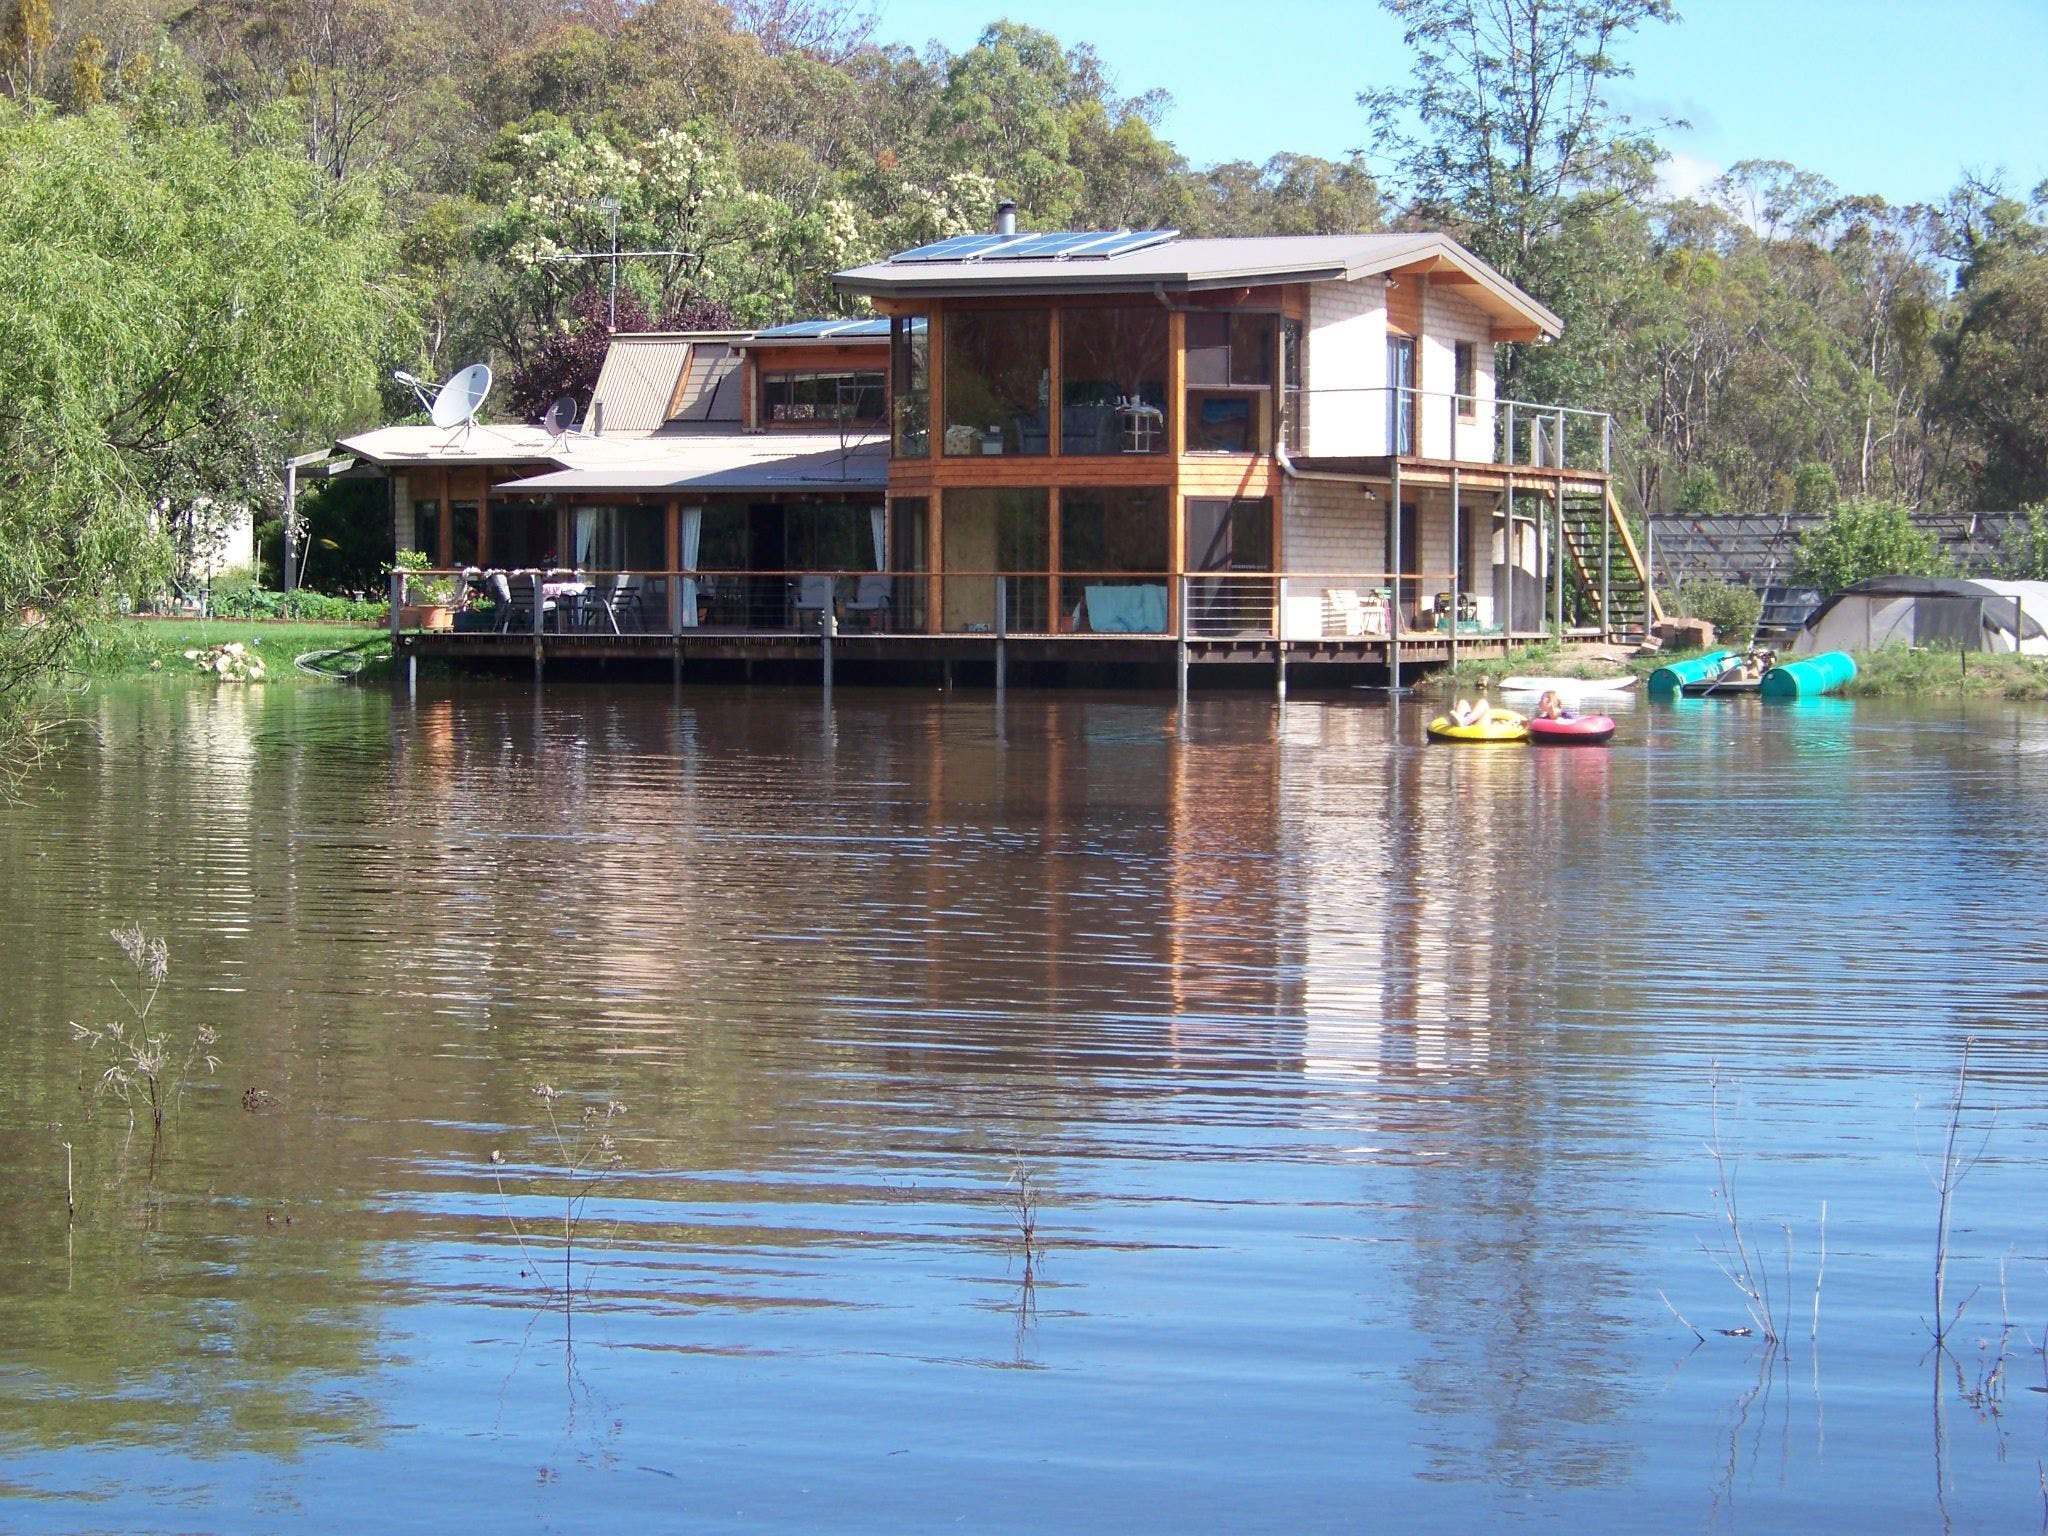 Lakeside Lodge - Accommodation in Surfers Paradise